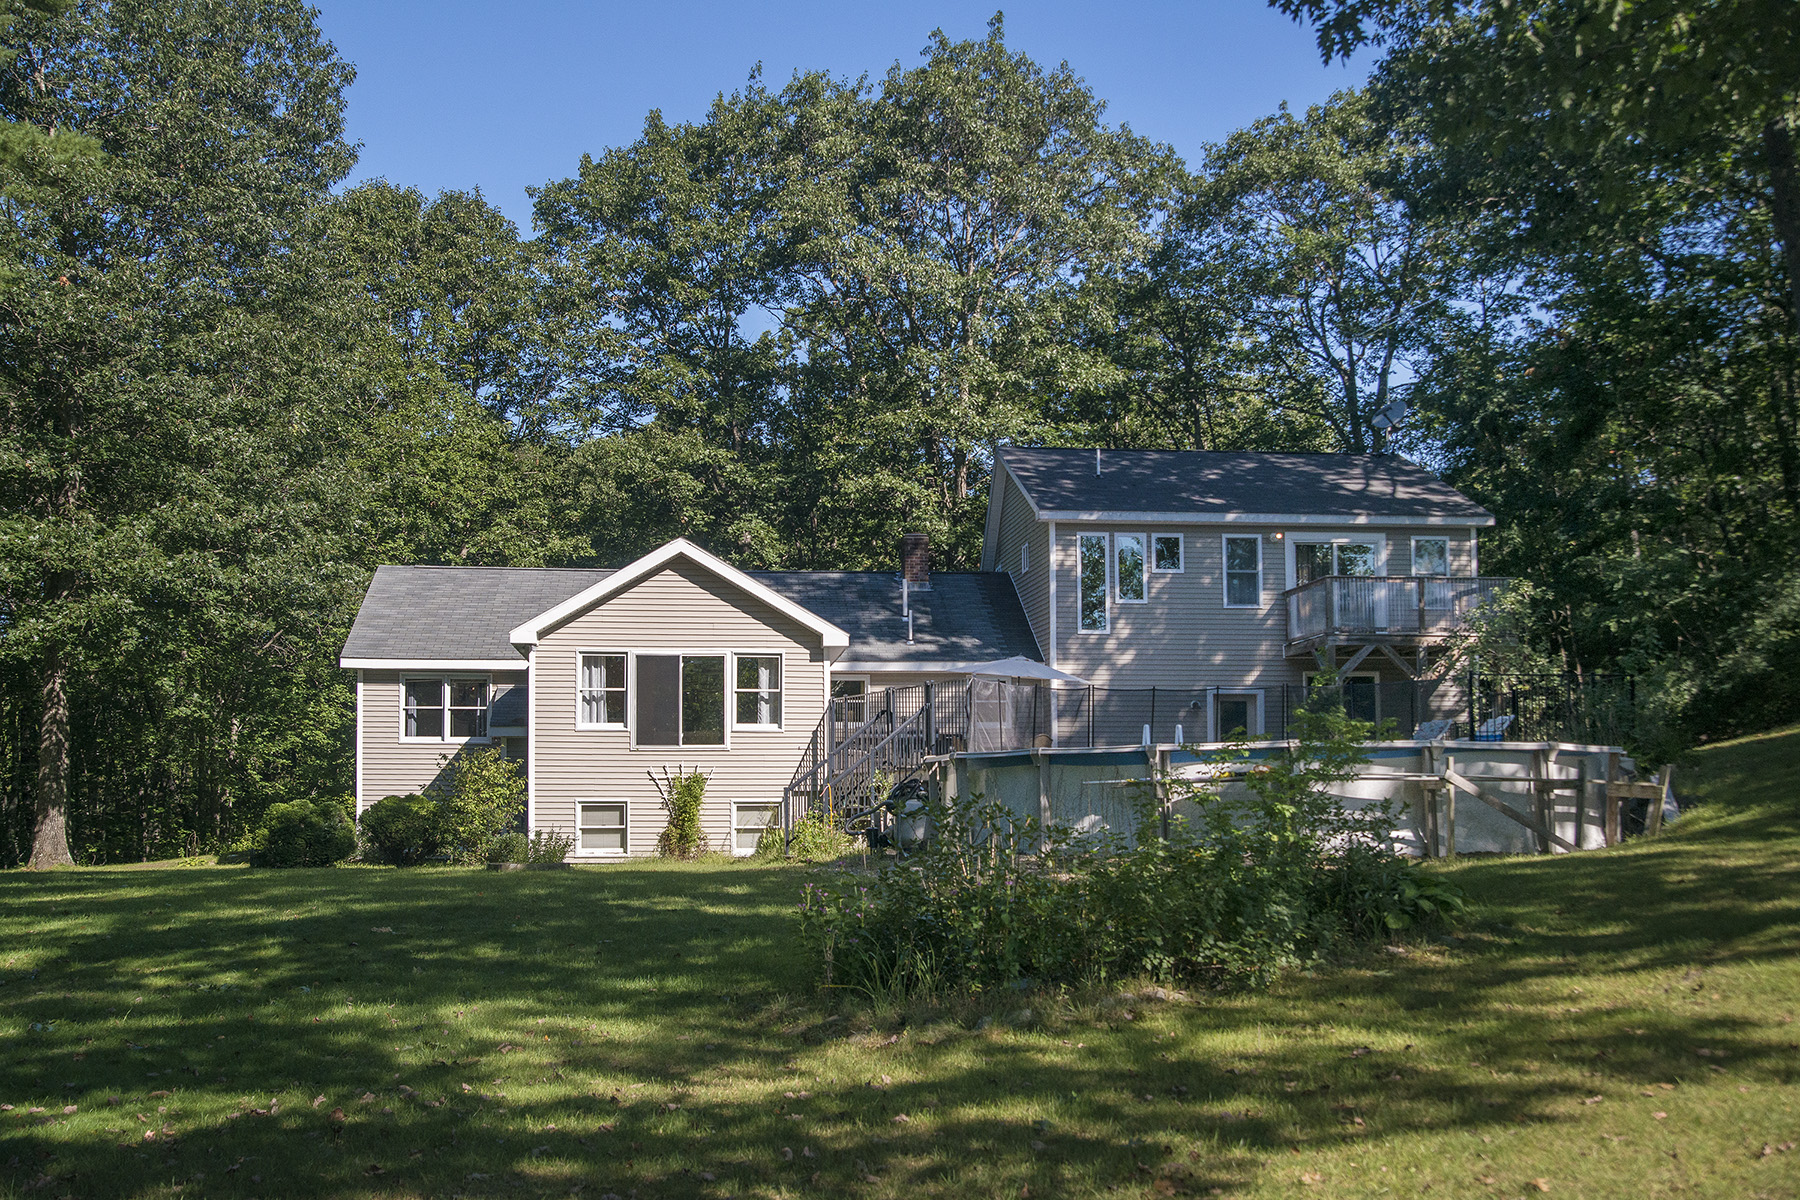 Single Family Home for Sale at 1 Emerson Park Drive Kennebunk, Maine 04043 United States